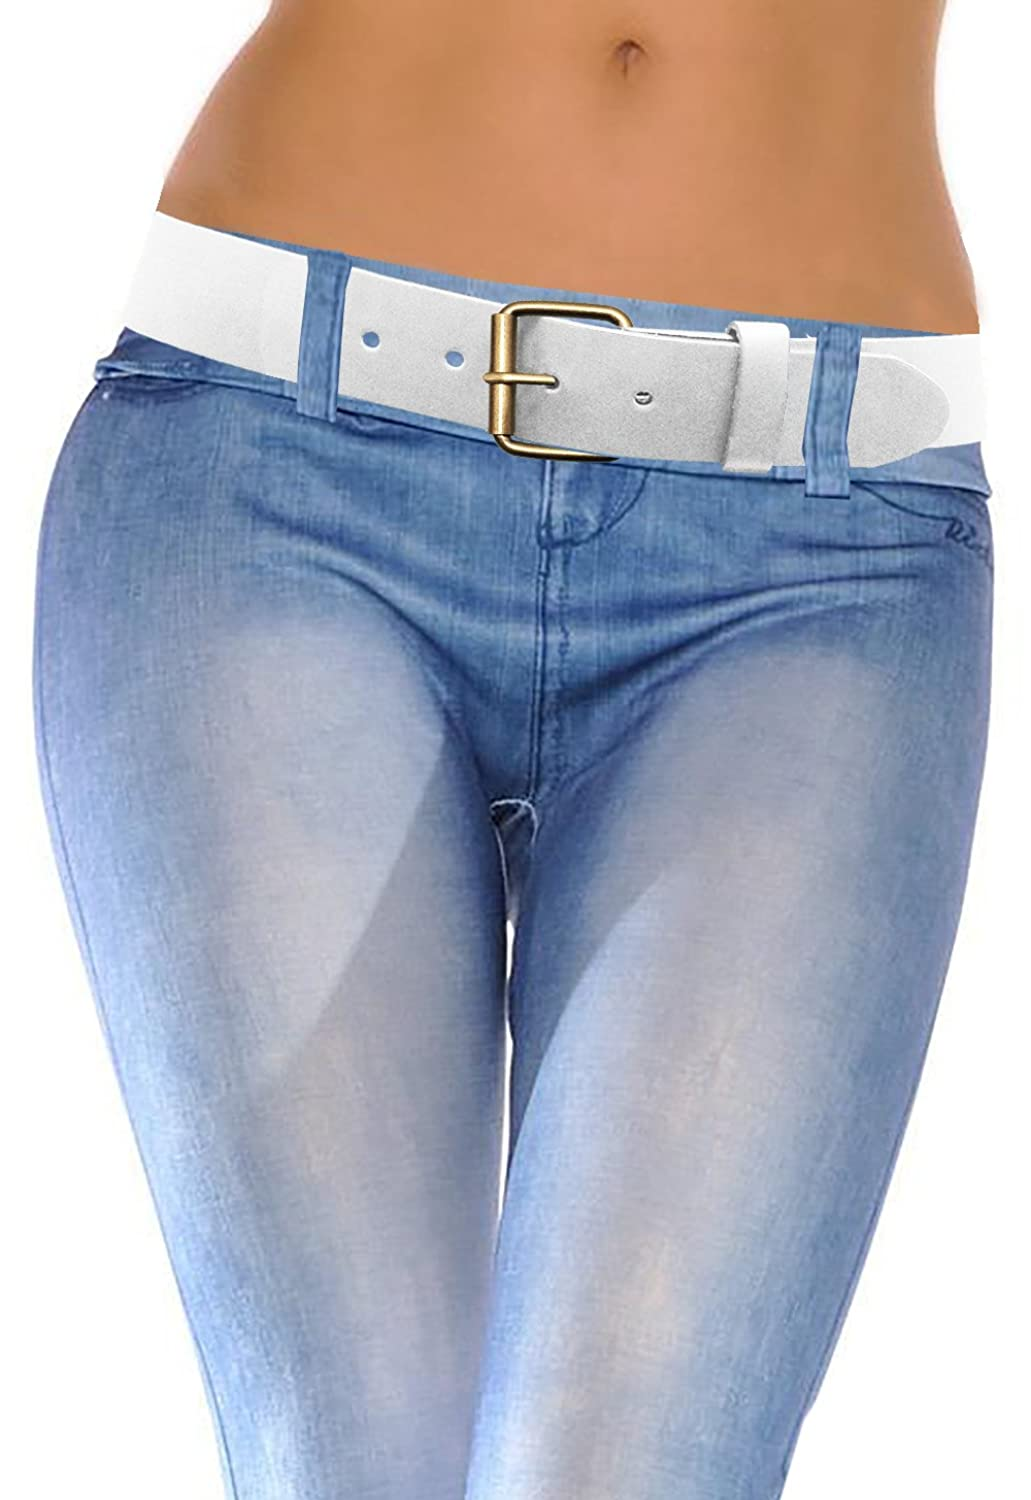 LUNA Women's Thick Wide Leather Belt - Brushed Gold - White -Small